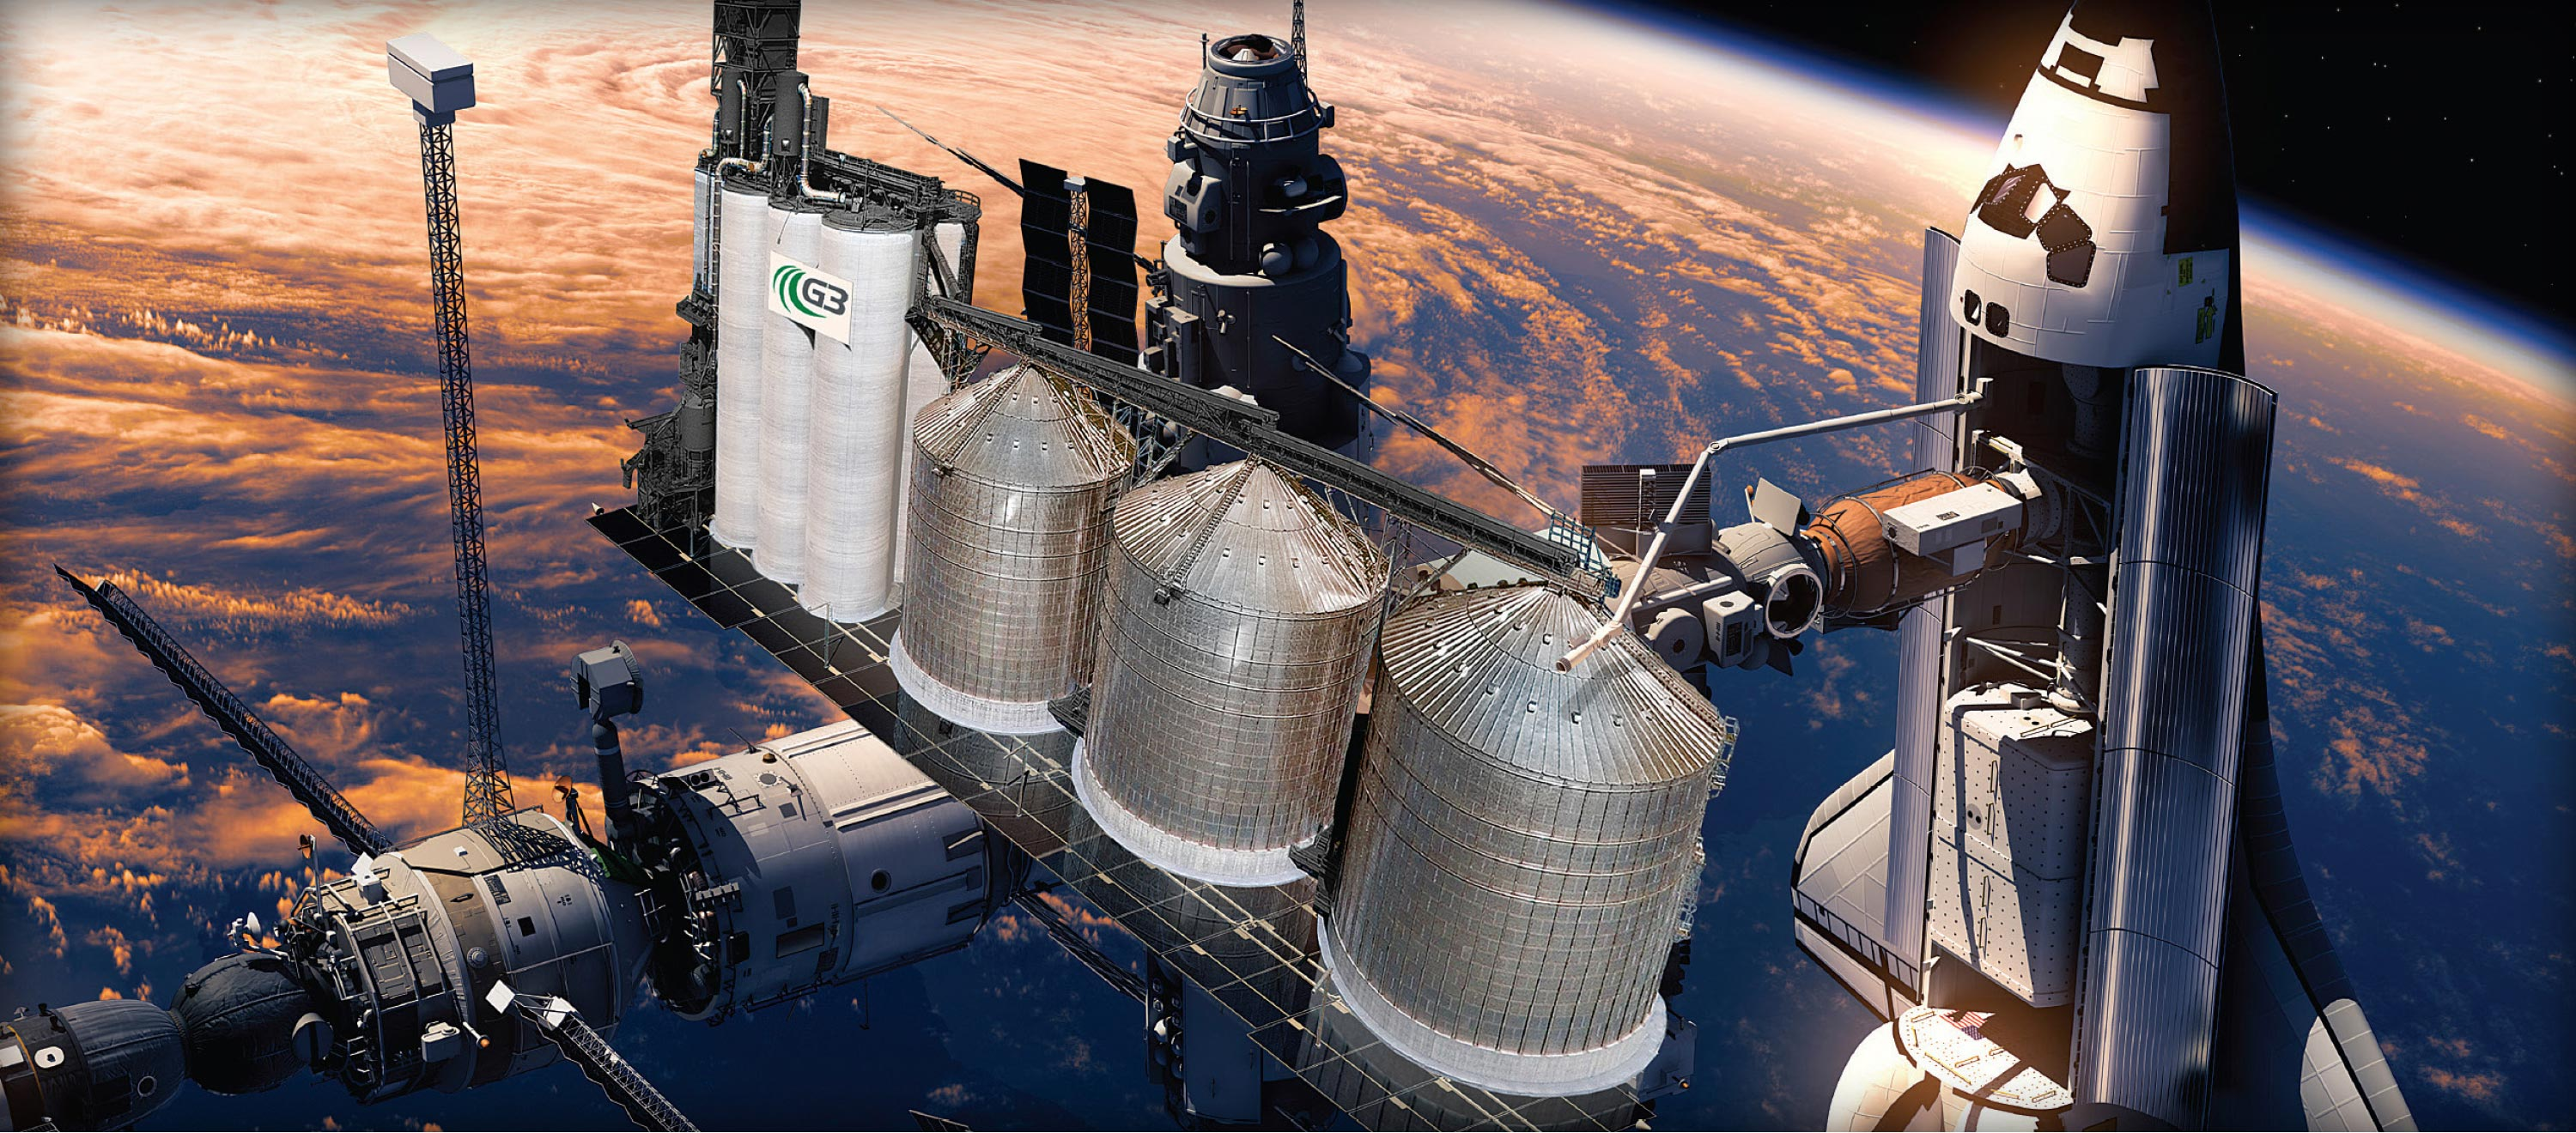 G3's Go Beyond Conventional campaign used grain elevators depicted as space-shuttle launching stations